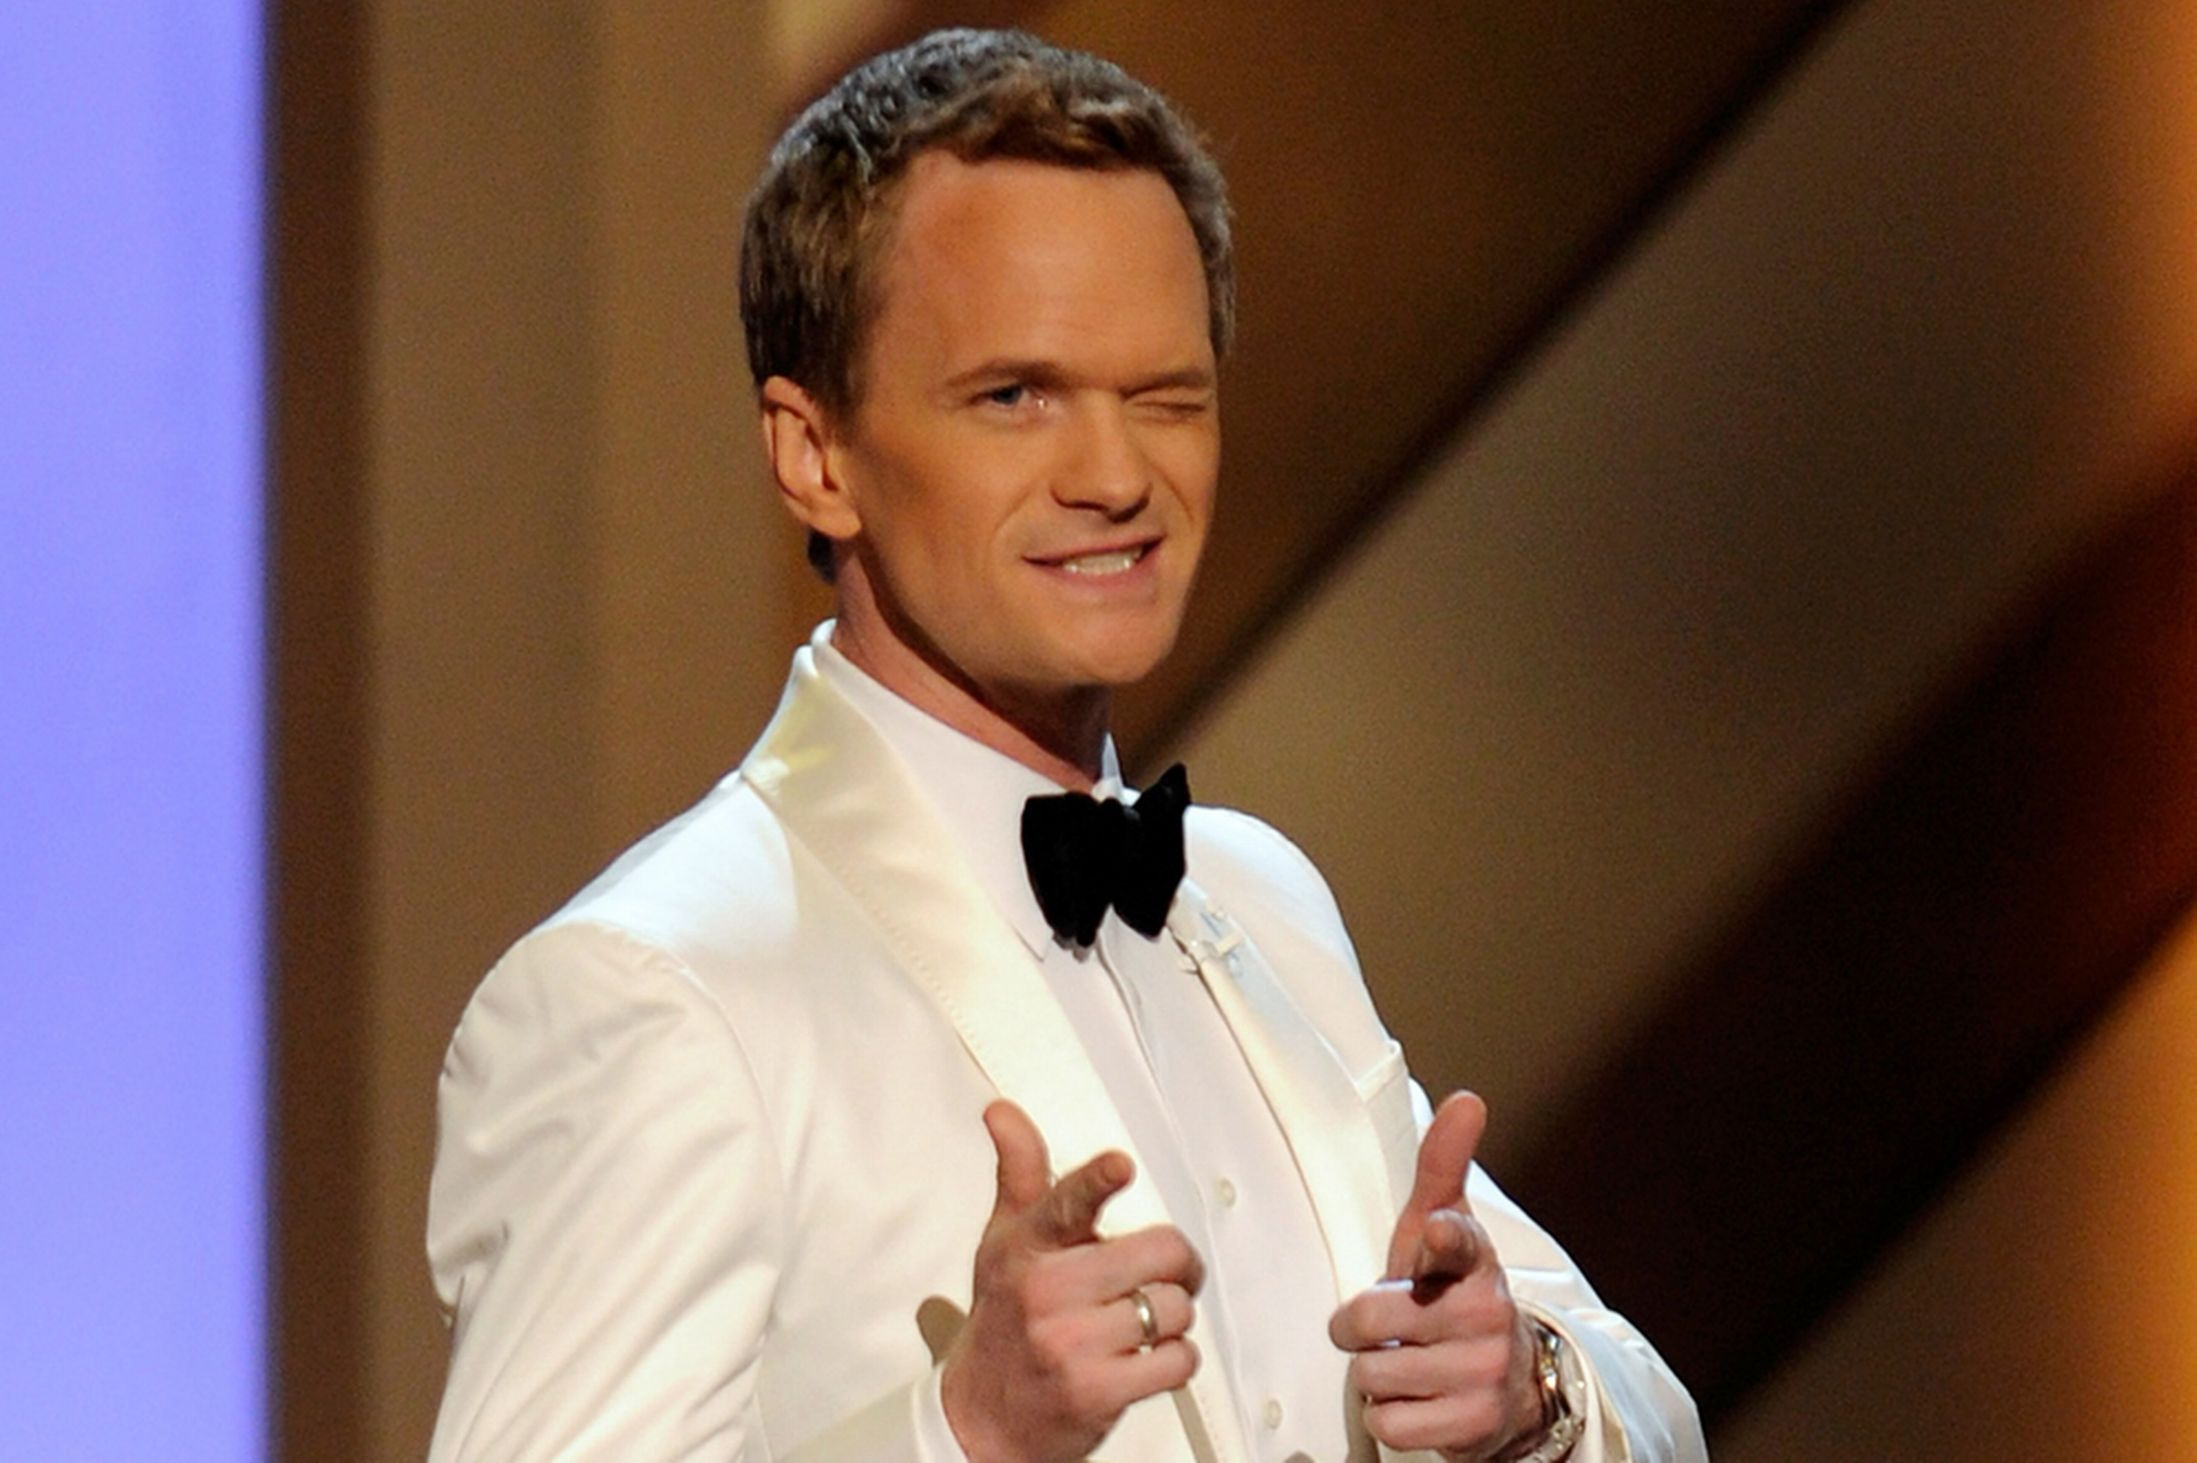 Barney Simpson Porn barney stinson's 40 best jokes and chat up lines to